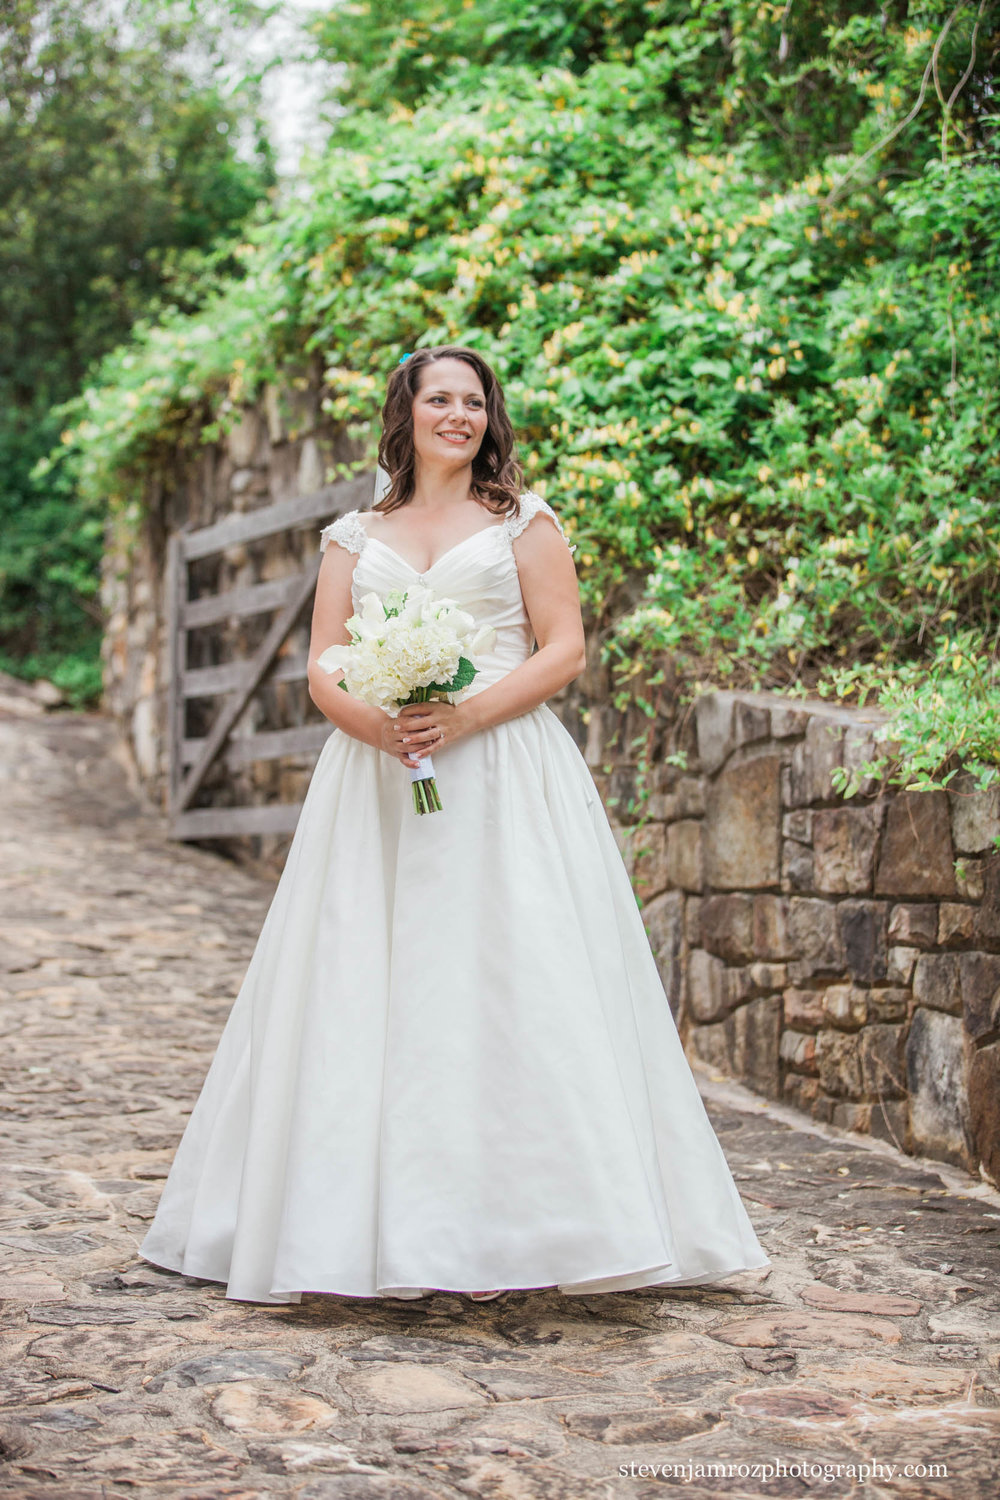 pretty-bride-yates-mill-raleigh-steven-jamroz-photography-0528.jpg